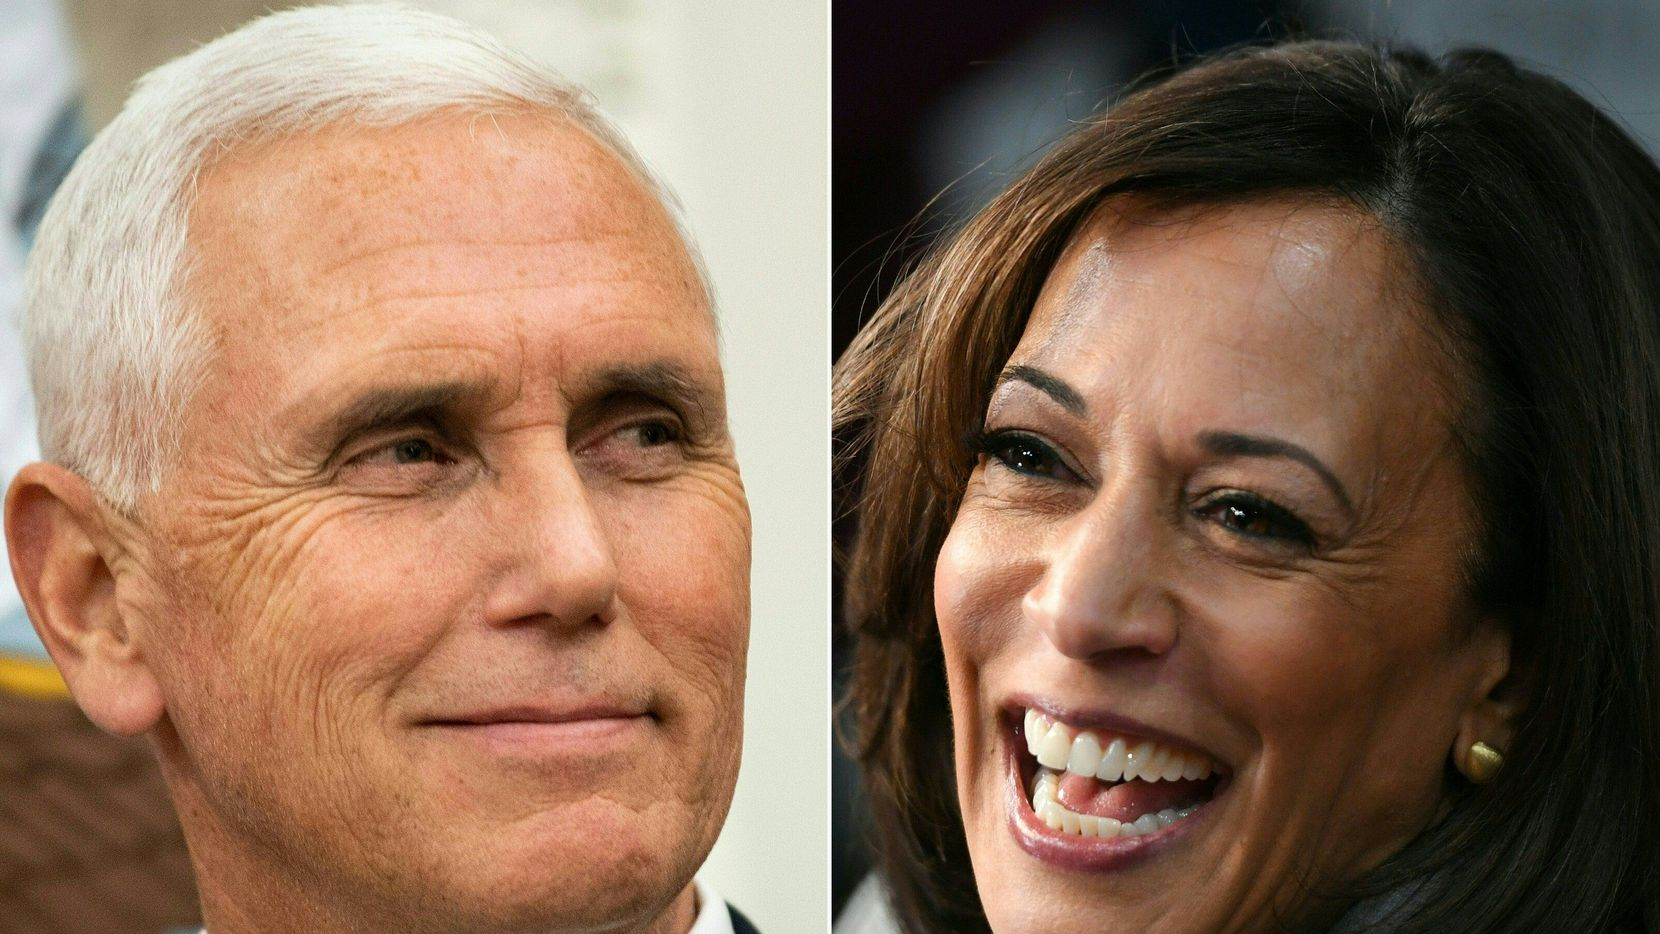 """Vice President Mike Pence, shown last October in Washington, and Democratic vice presidential candidate California Senator Kamala Harris, shown in Atlanta last November, will clash Wednesday night in this year's only vice presidential debate. The encounter has more meaning than usual. One in every five vice presidents has had to replace a fallen president, and this year, """"the odds are higher"""" because Trump and Biden, both in their mid-70s, could experience the health challenges that age cohort faces, a professor noted."""